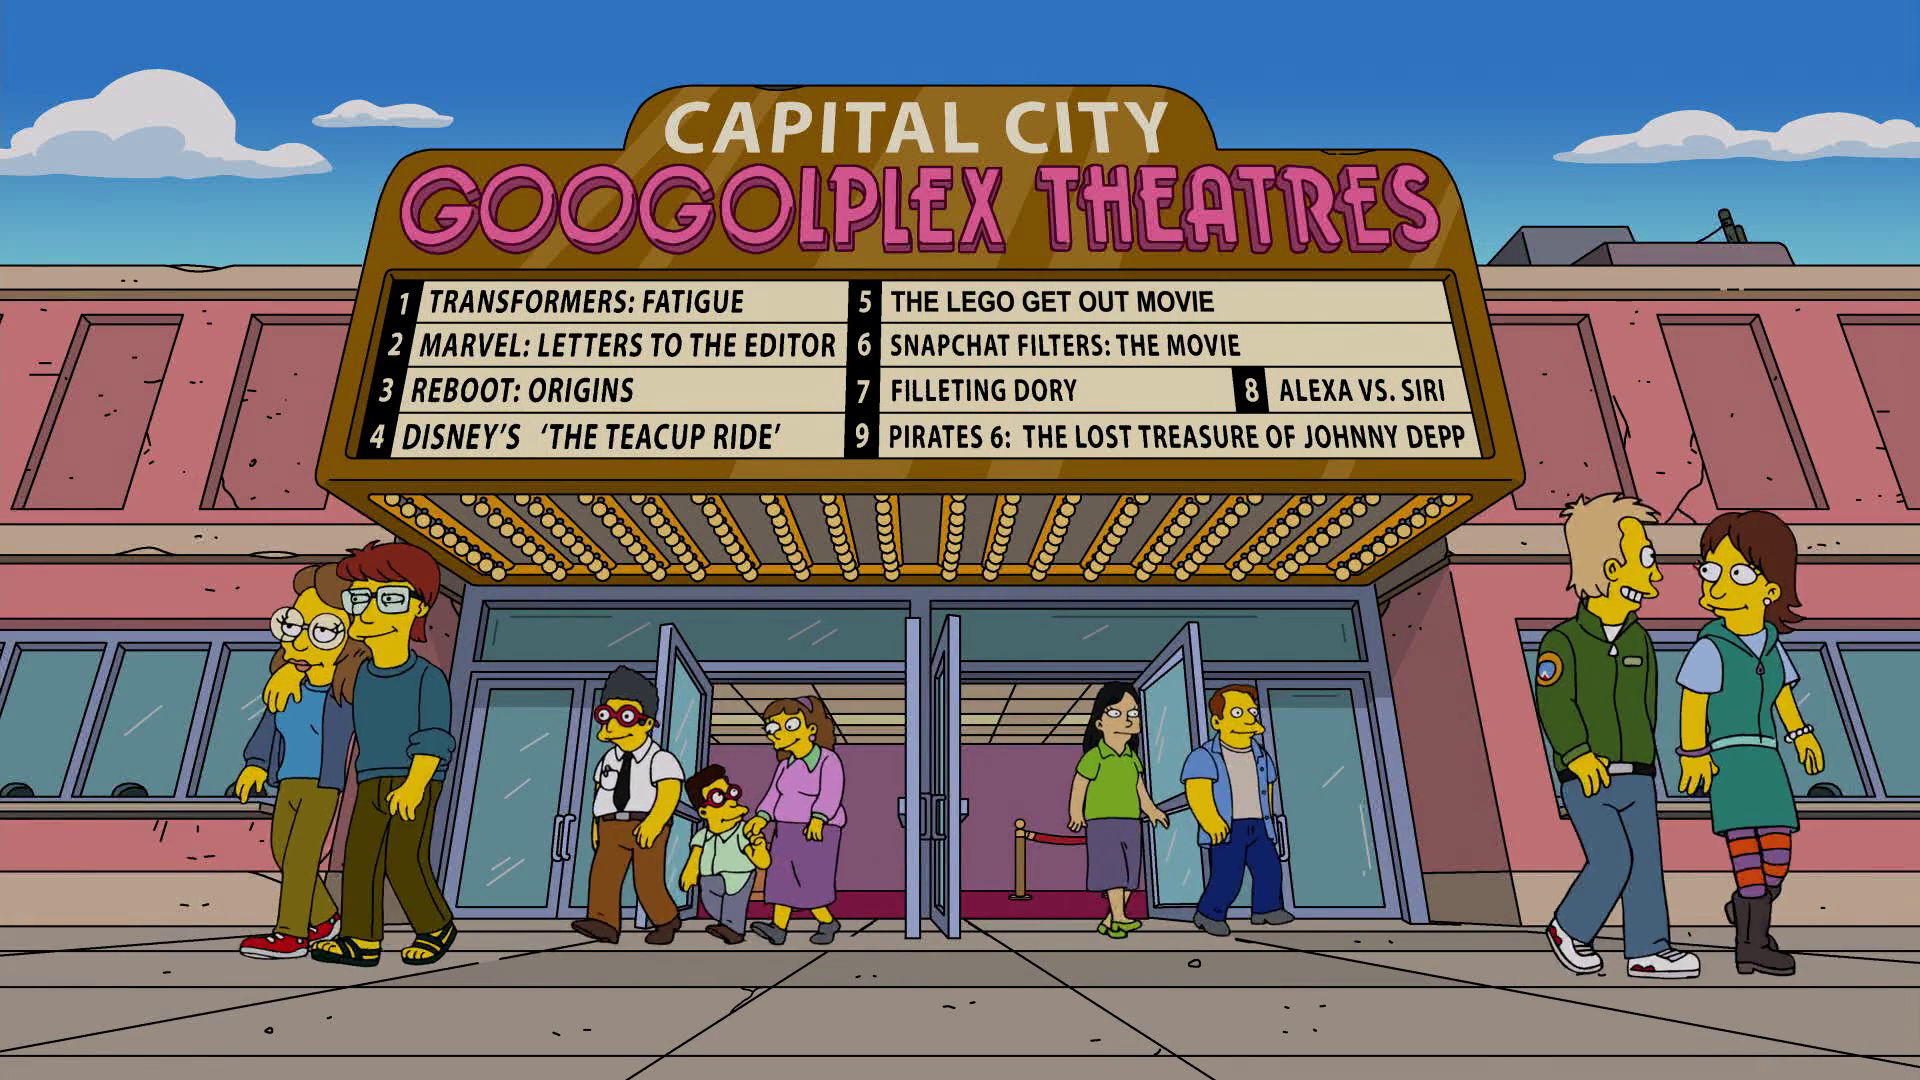 Capital City Googolplex Theatres.png